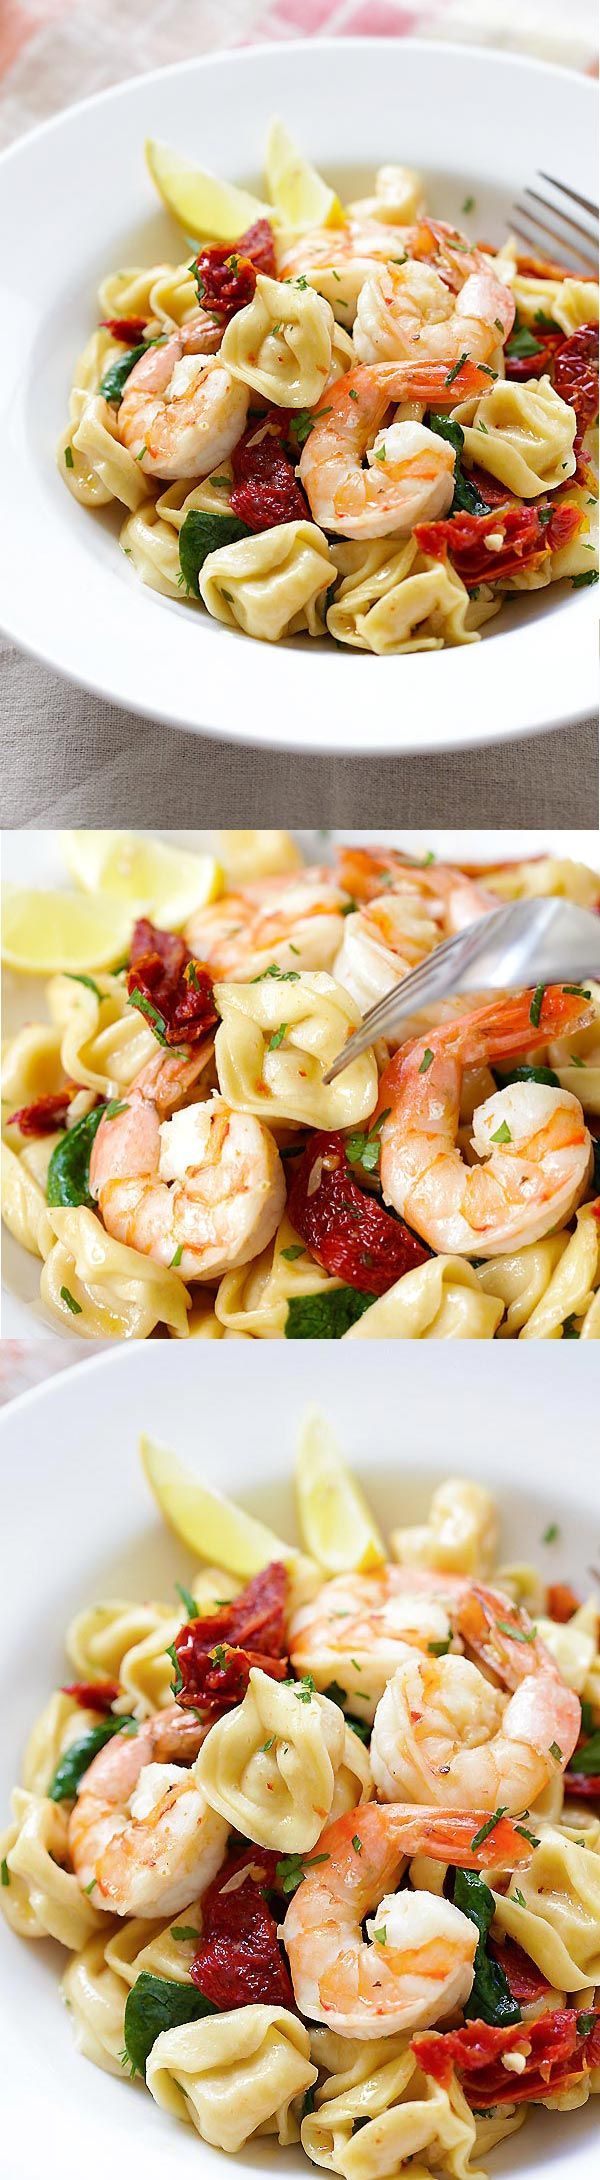 Garlic Shrimp Tortellini – AMAZING tortellini with garlic shrimp. Easy 20-min recipe, so delicious and better than restaurant's | rasamalaysia.com